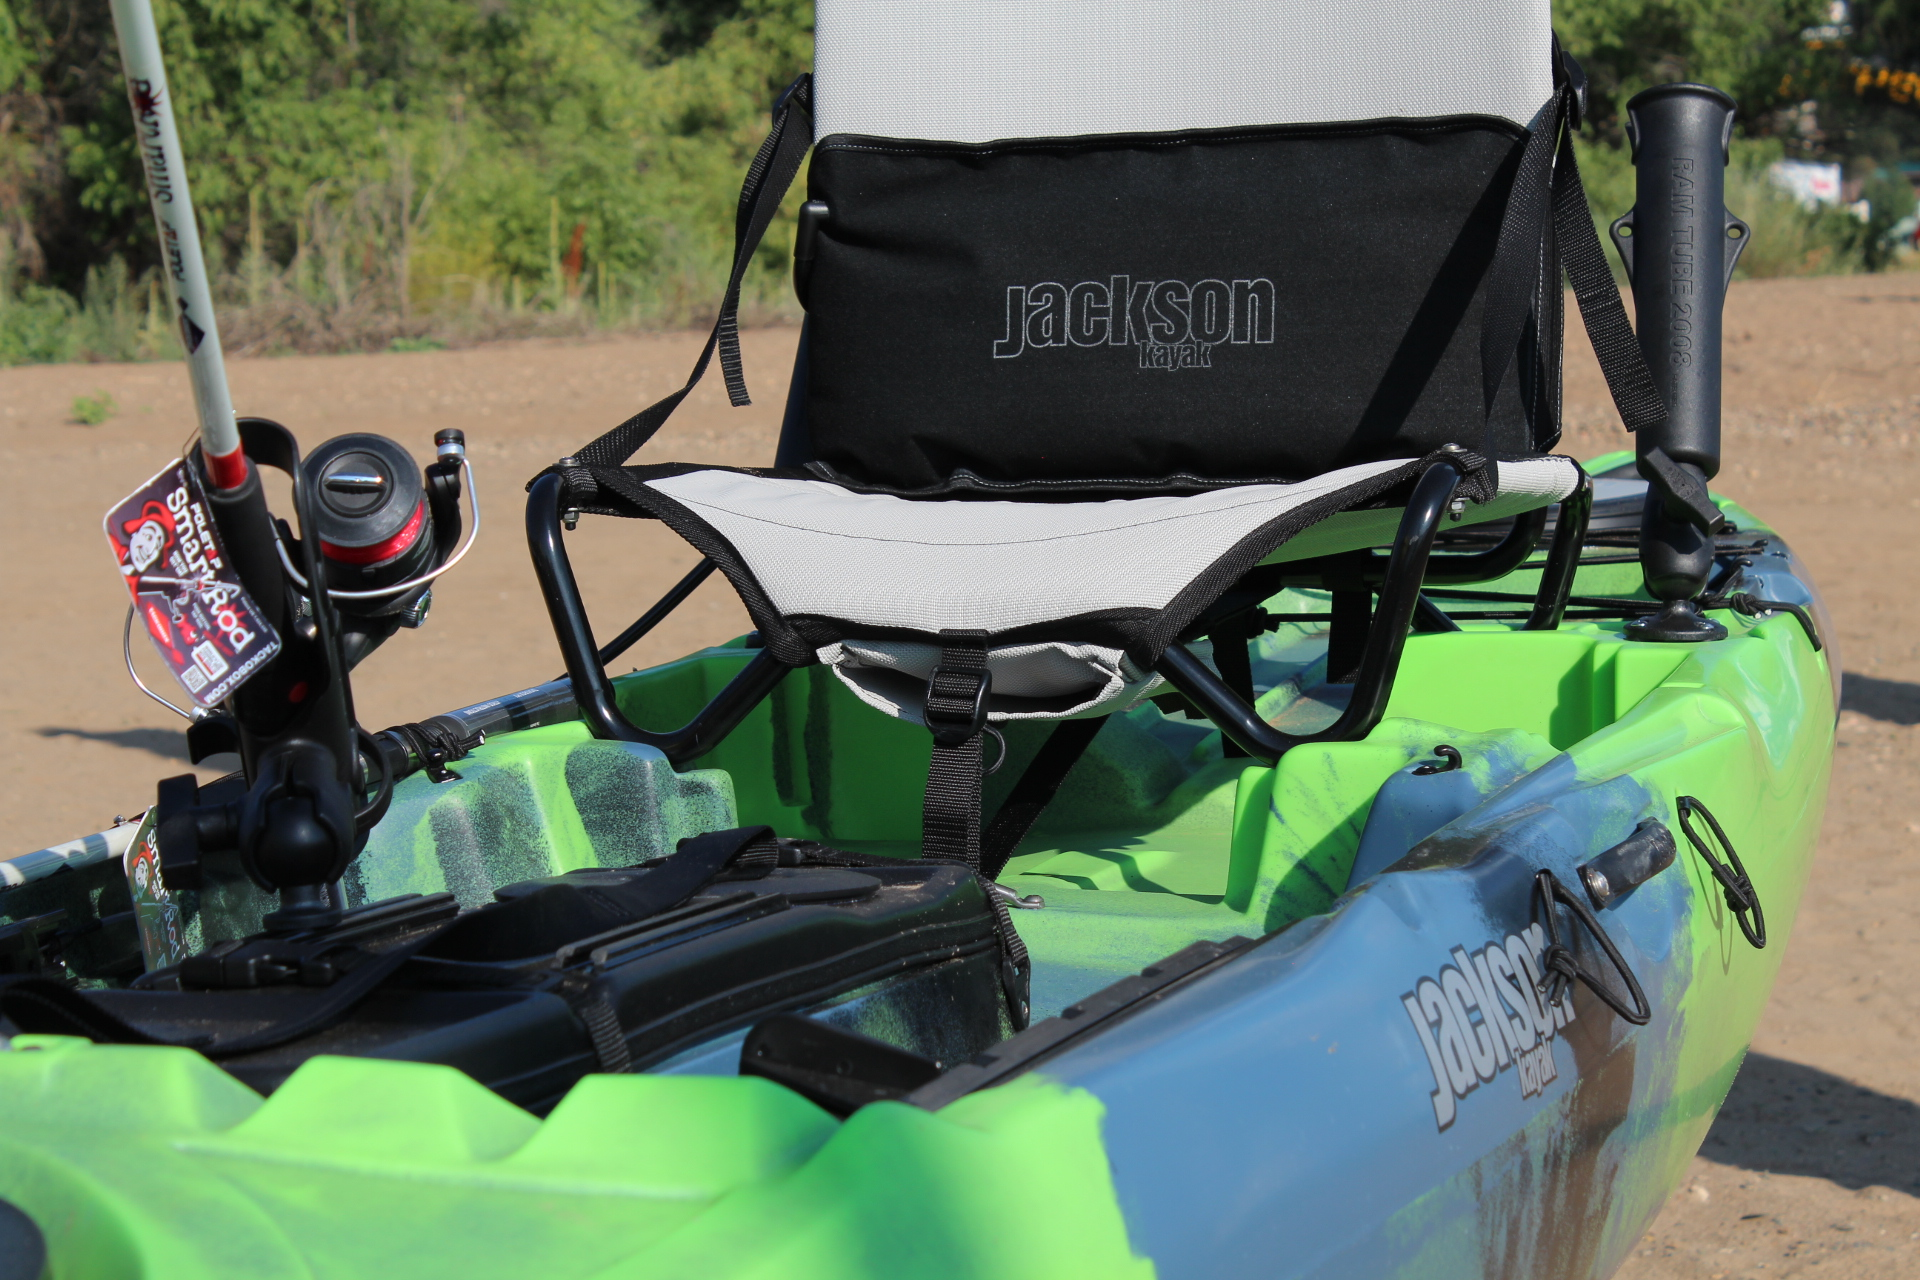 2014 Product Demos at Outdoor Retailer - Jackson Kayak